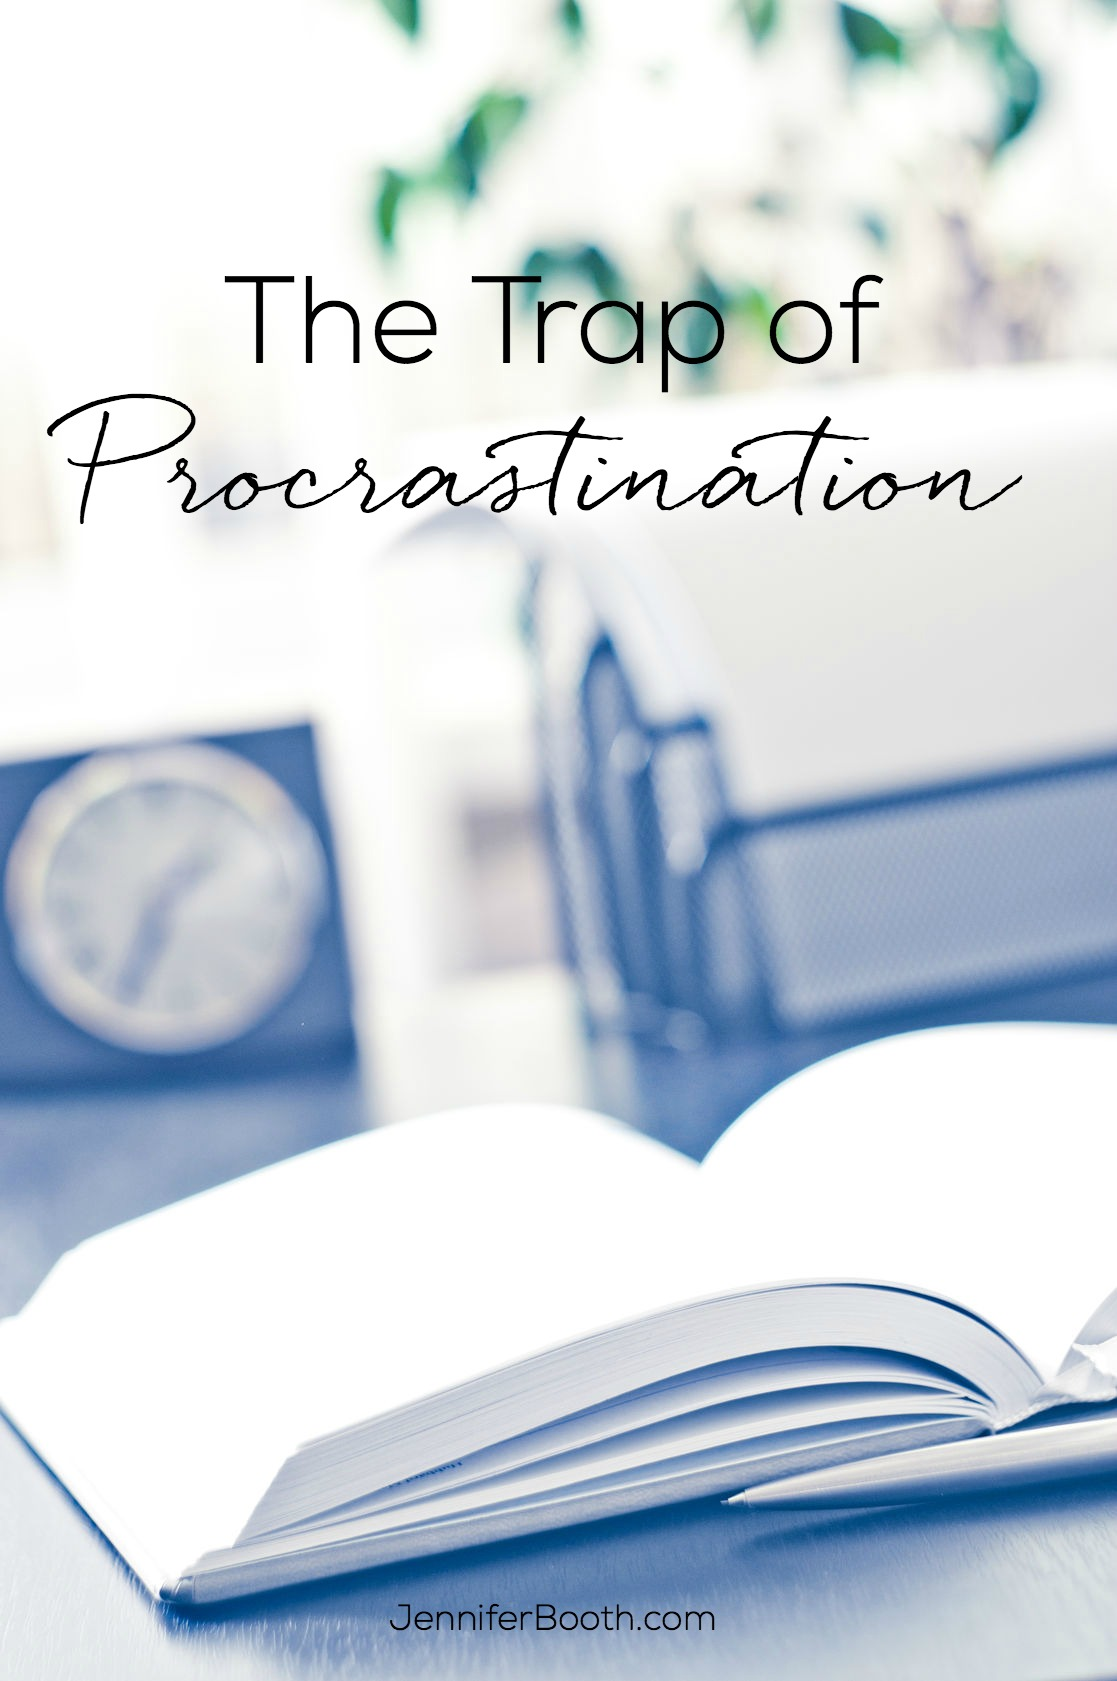 The Trap of Procrastination